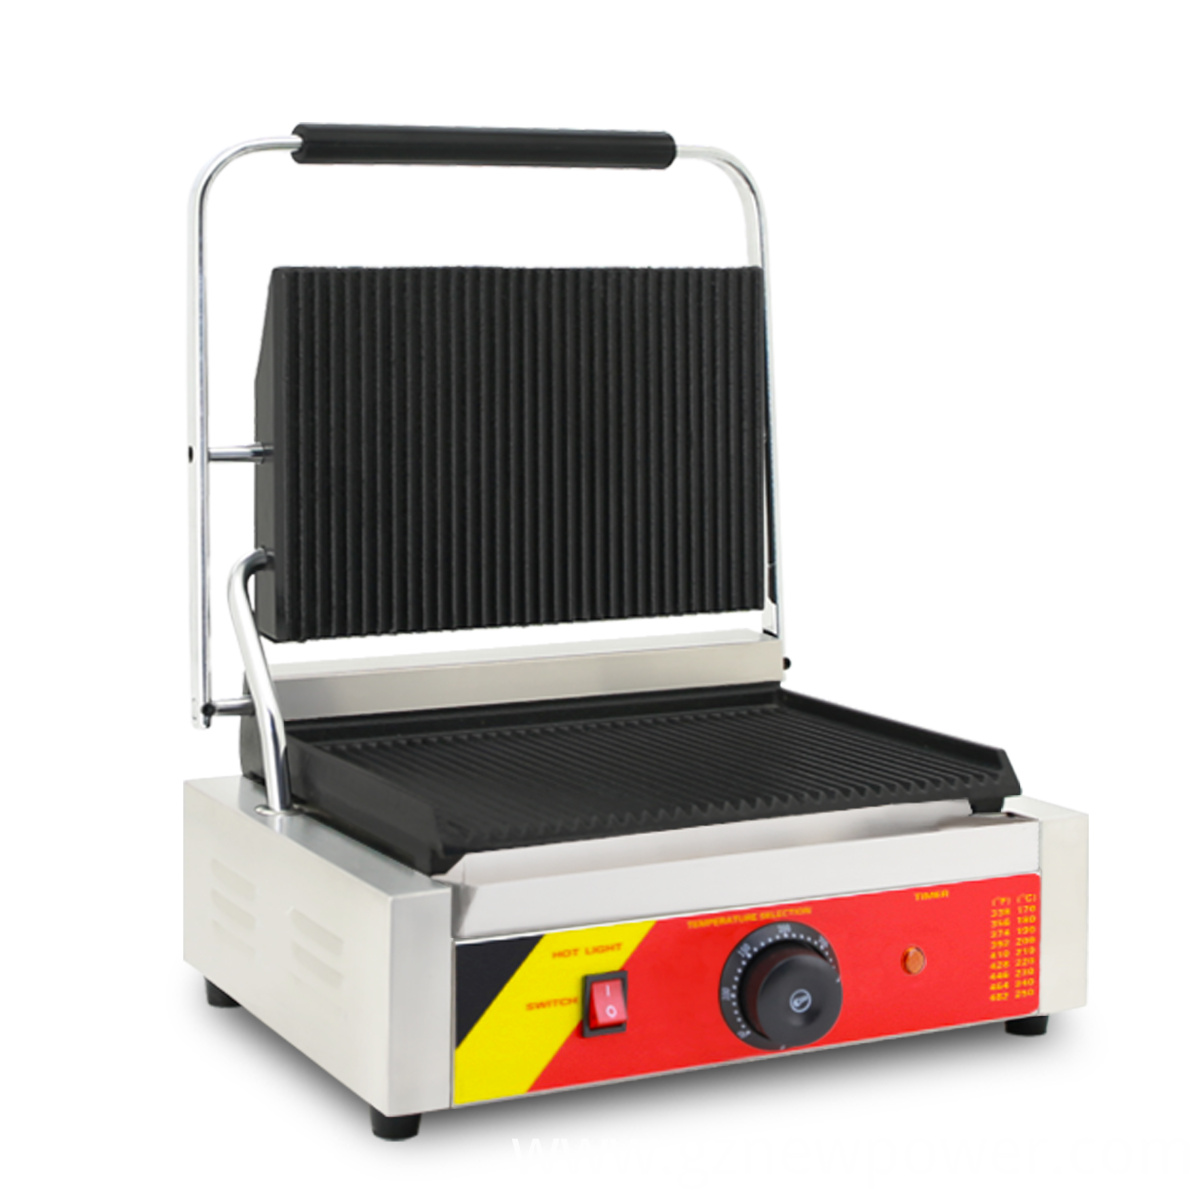 Commercial Panini Grill For Sale China Manufacturer